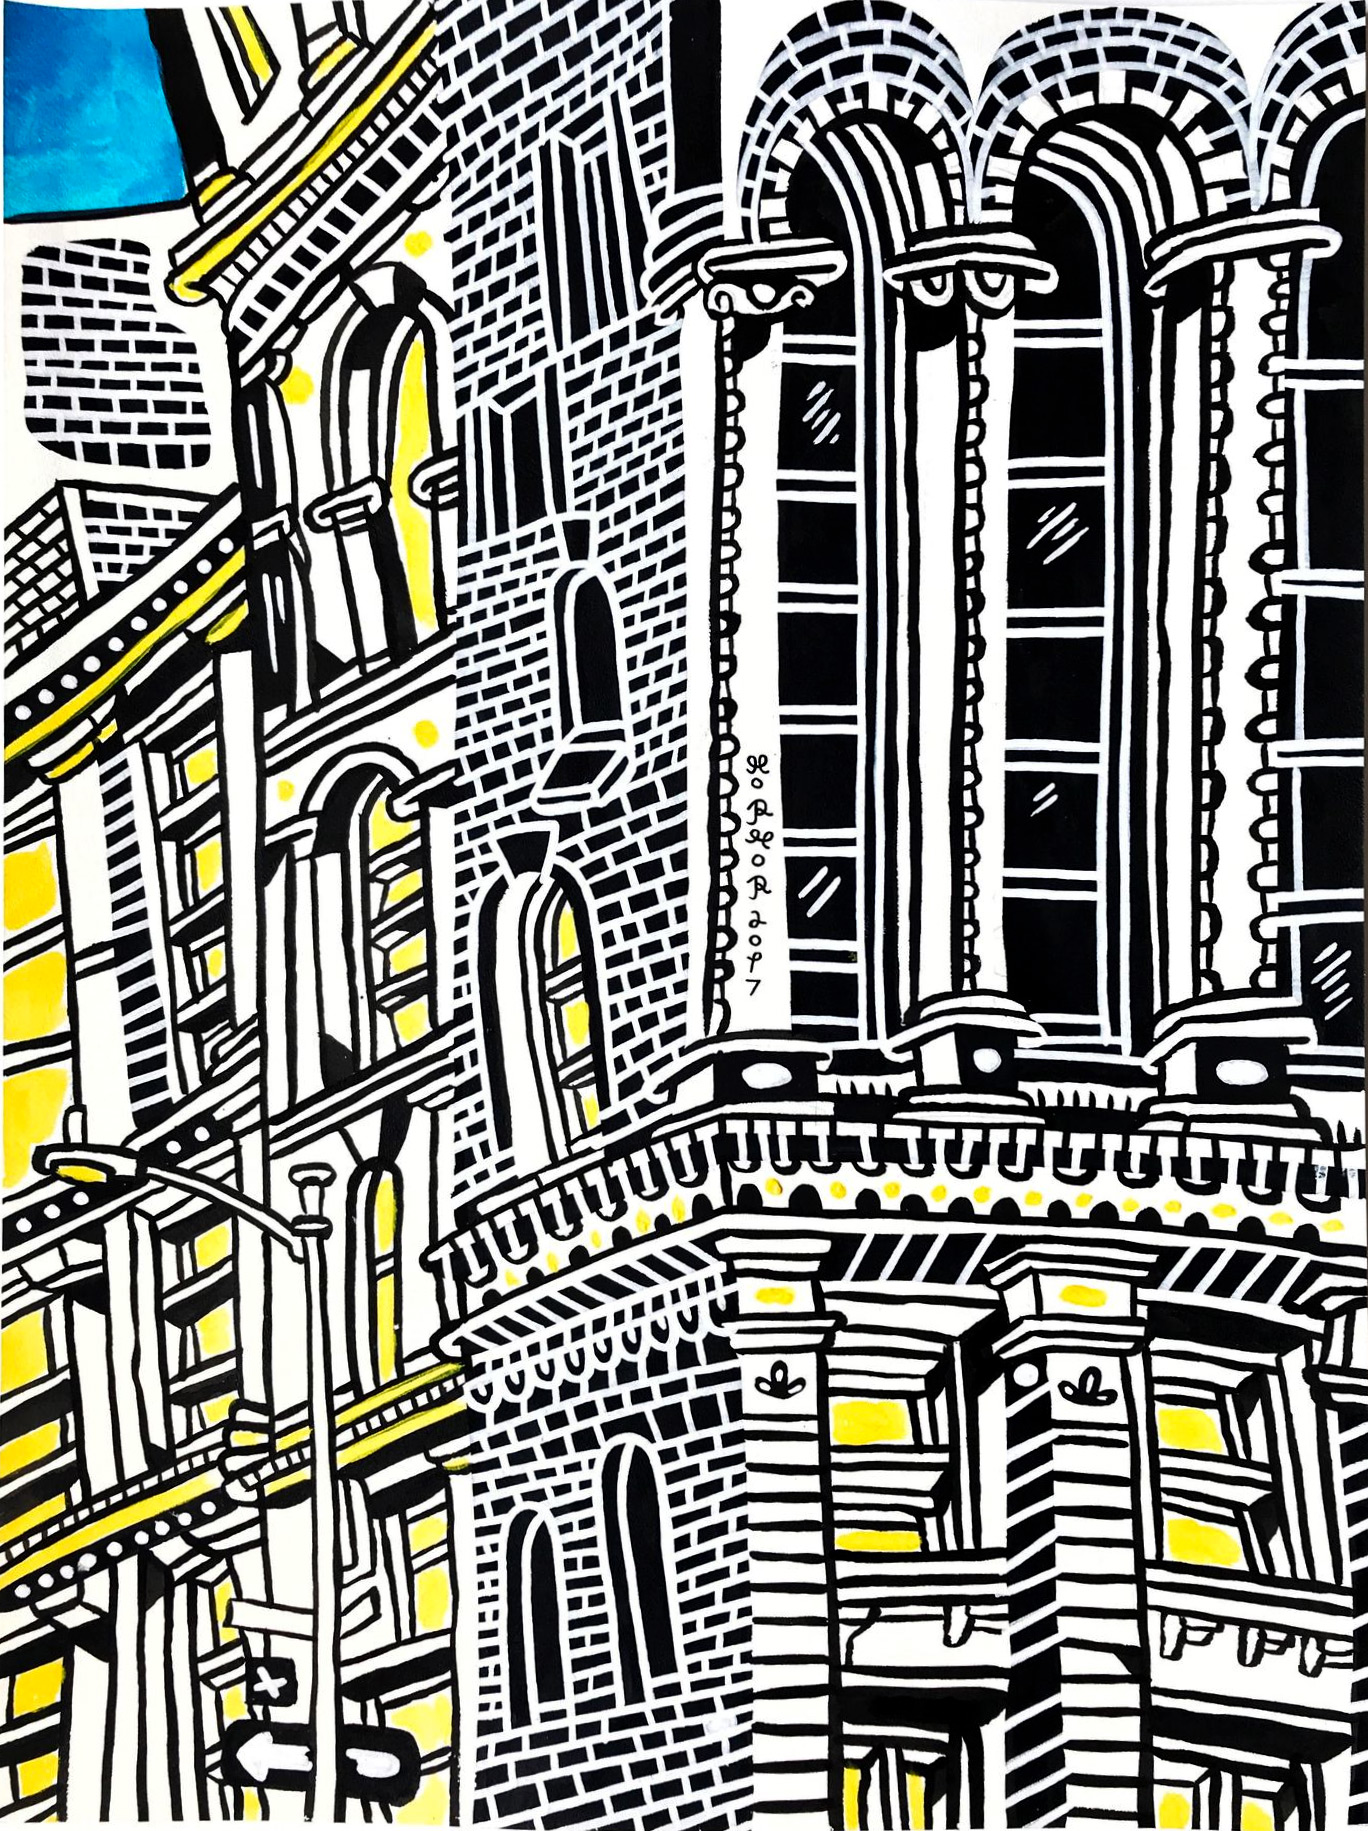 drawings, paintings, colorful, figurative, graphical, illustrative, pop, architecture, cartoons, black, white, yellow, acrylic, ink, paper, marker, architectural, buildings, cities, coffee, contemporary-art, copenhagen, danish, decorative, design, houses, interior, interior-design, modern, modern-art, nordic, pop-art, posters, scandinavien, Buy original high quality art. Paintings, drawings, limited edition prints & posters by talented artists.